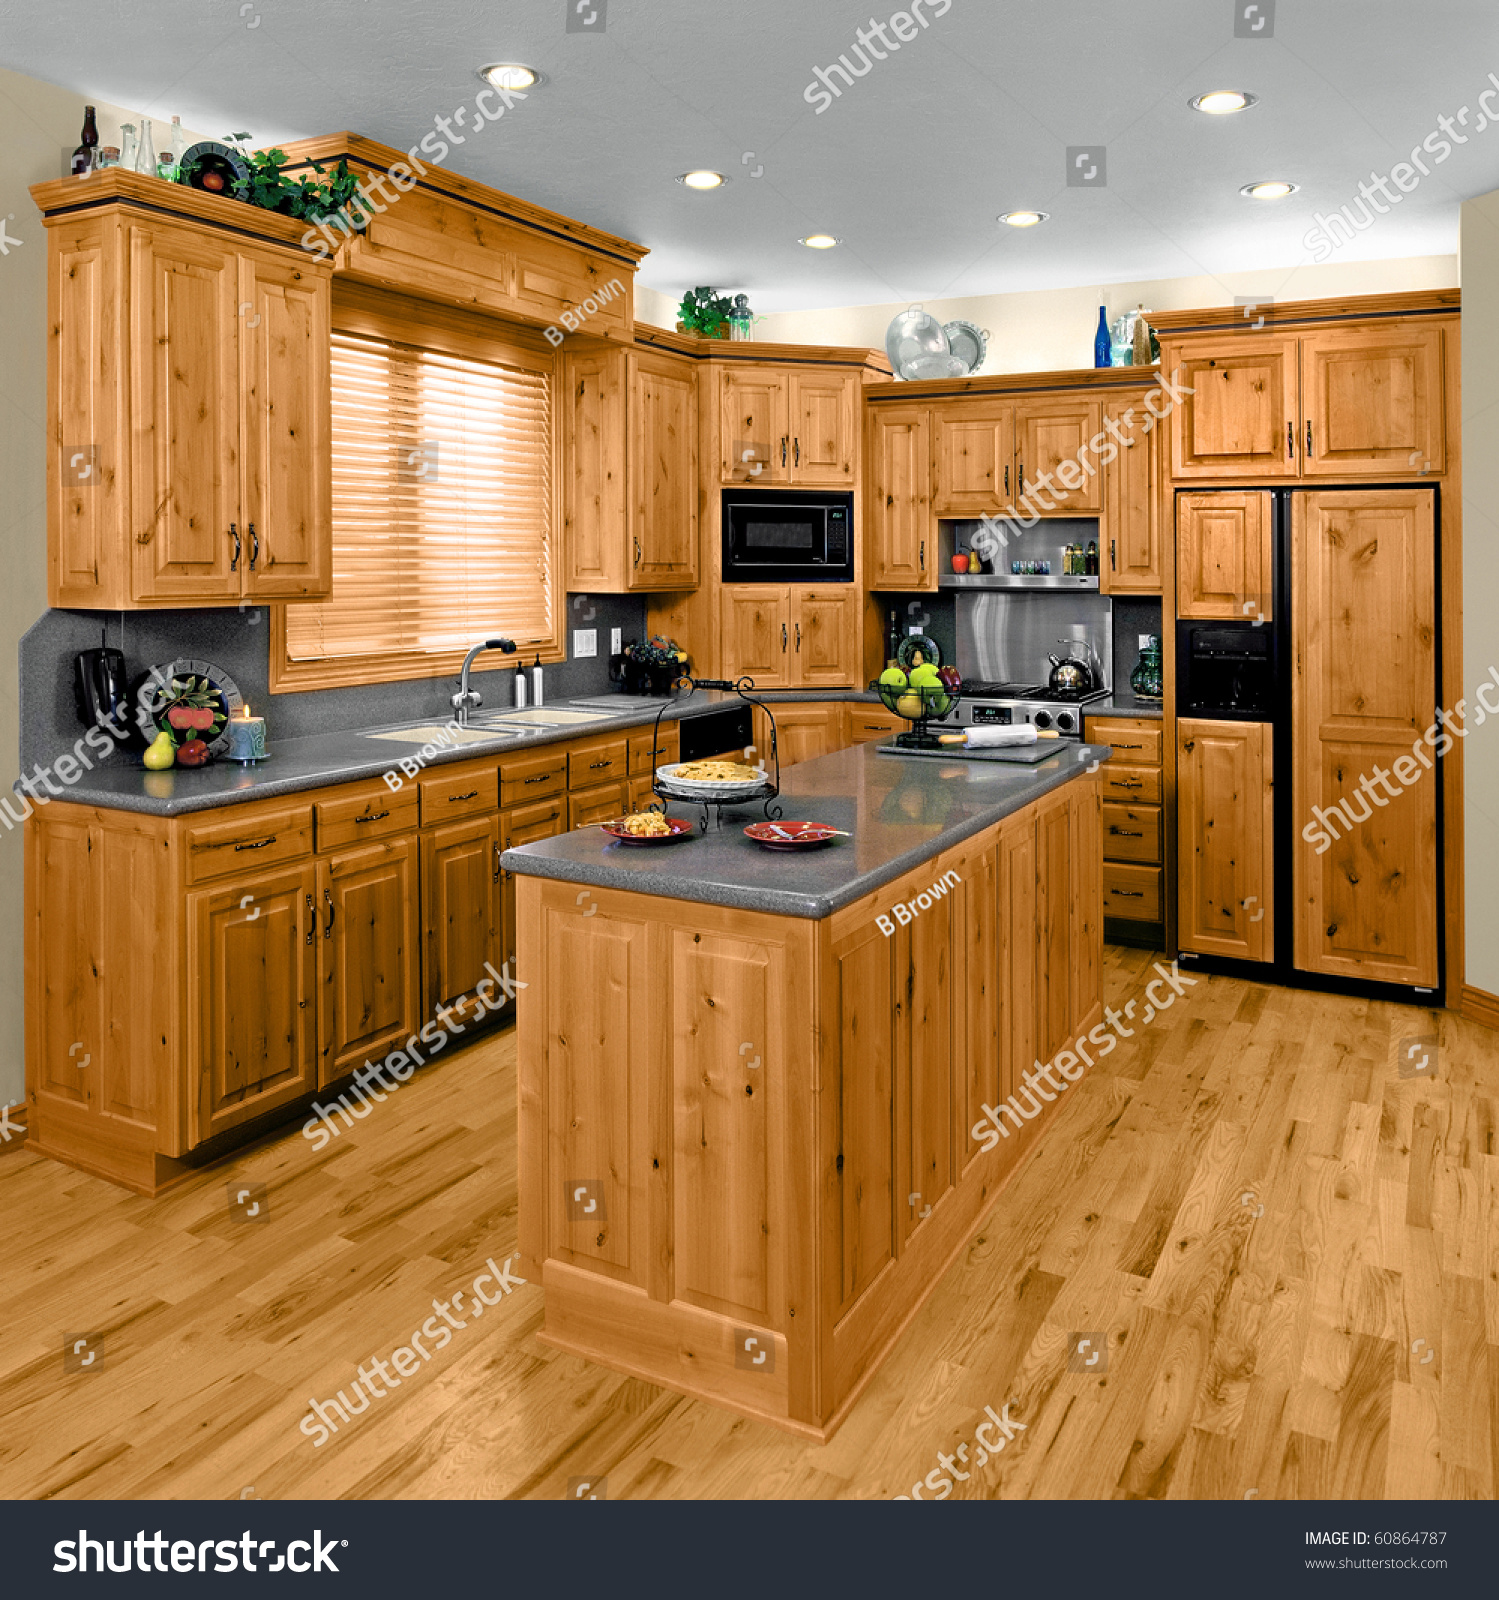 Kitchen Cabinets In Stock: Modern Residential Kitchen Hickory Cabinets Stock Photo